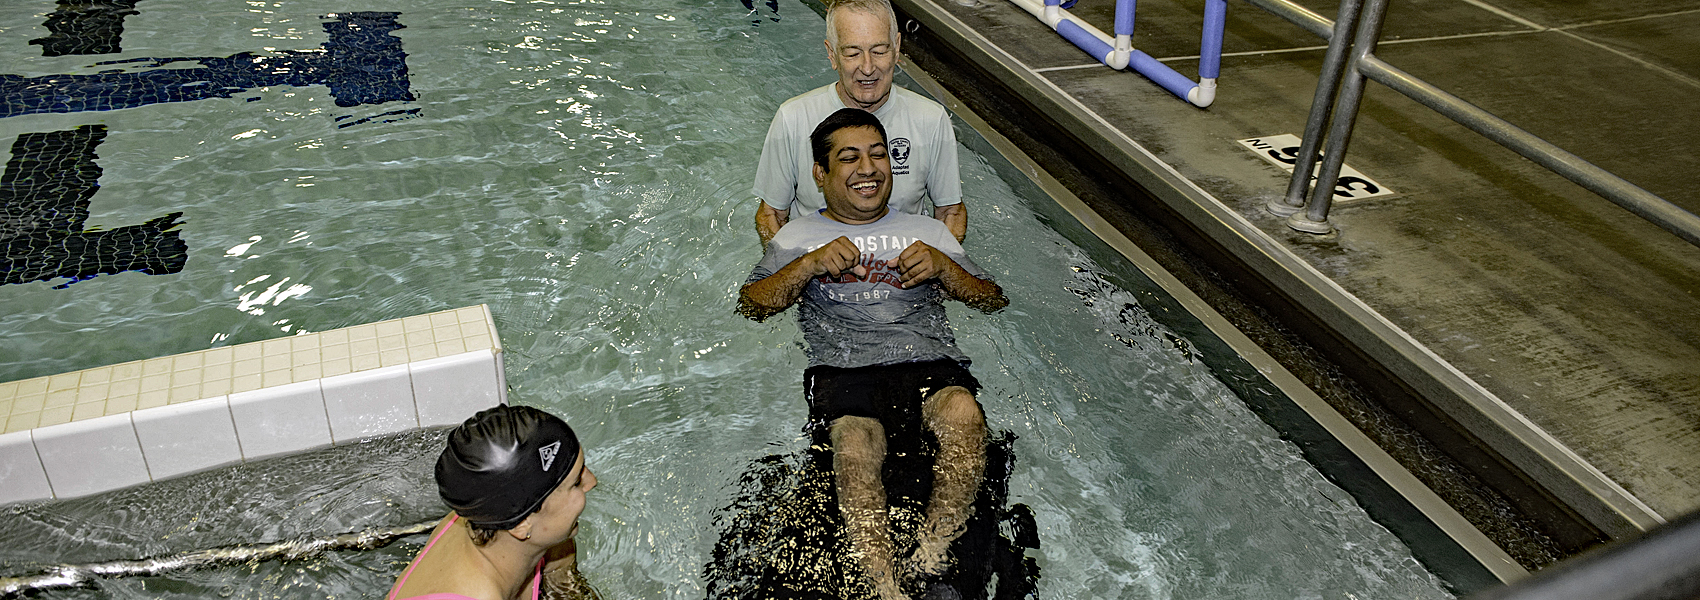 Volunteer helps swimmer in wheelchair into pool